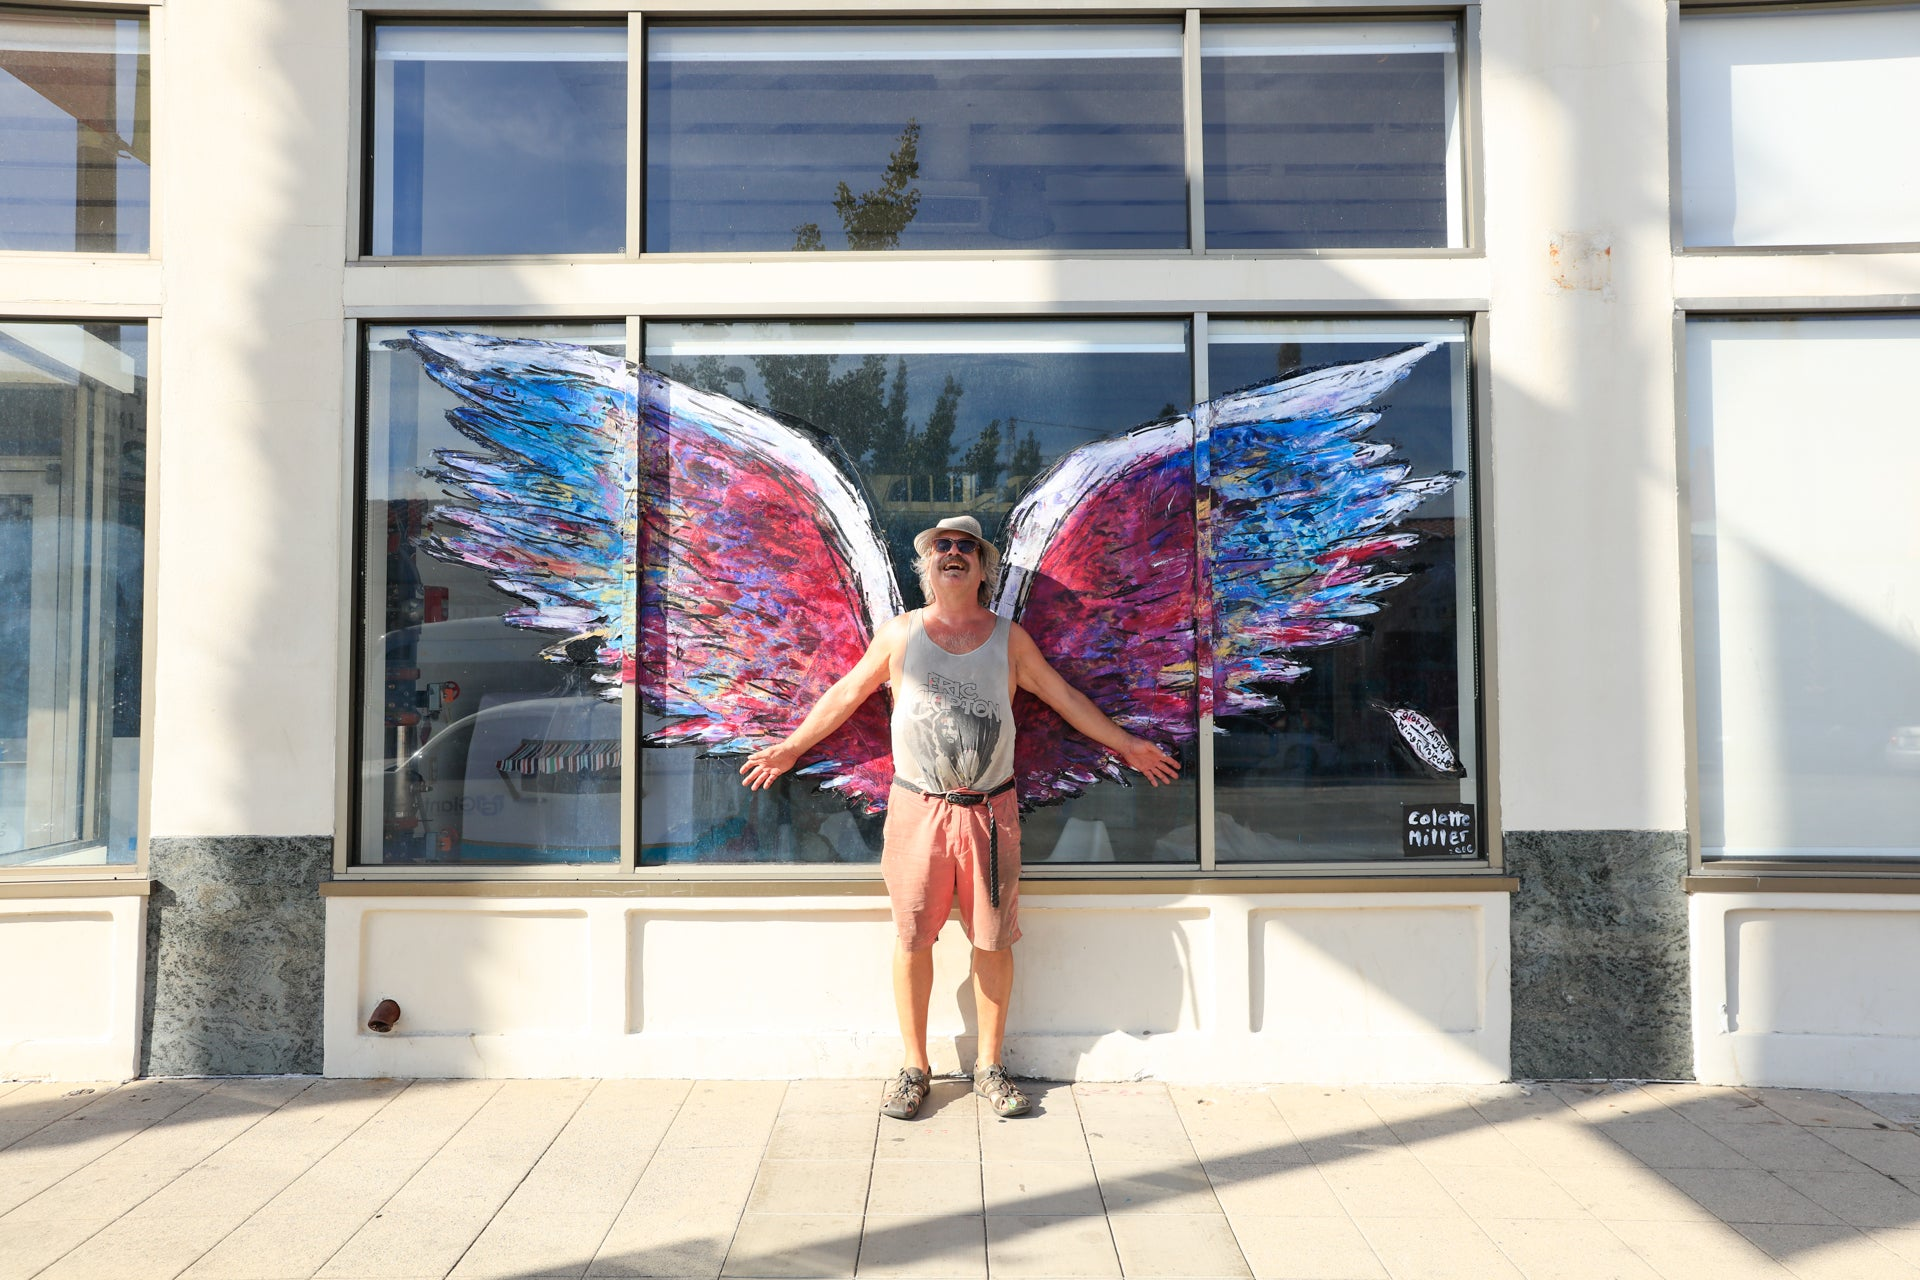 b2ab70c2e1 Discover the Global Angel Wings Project in Los Angeles